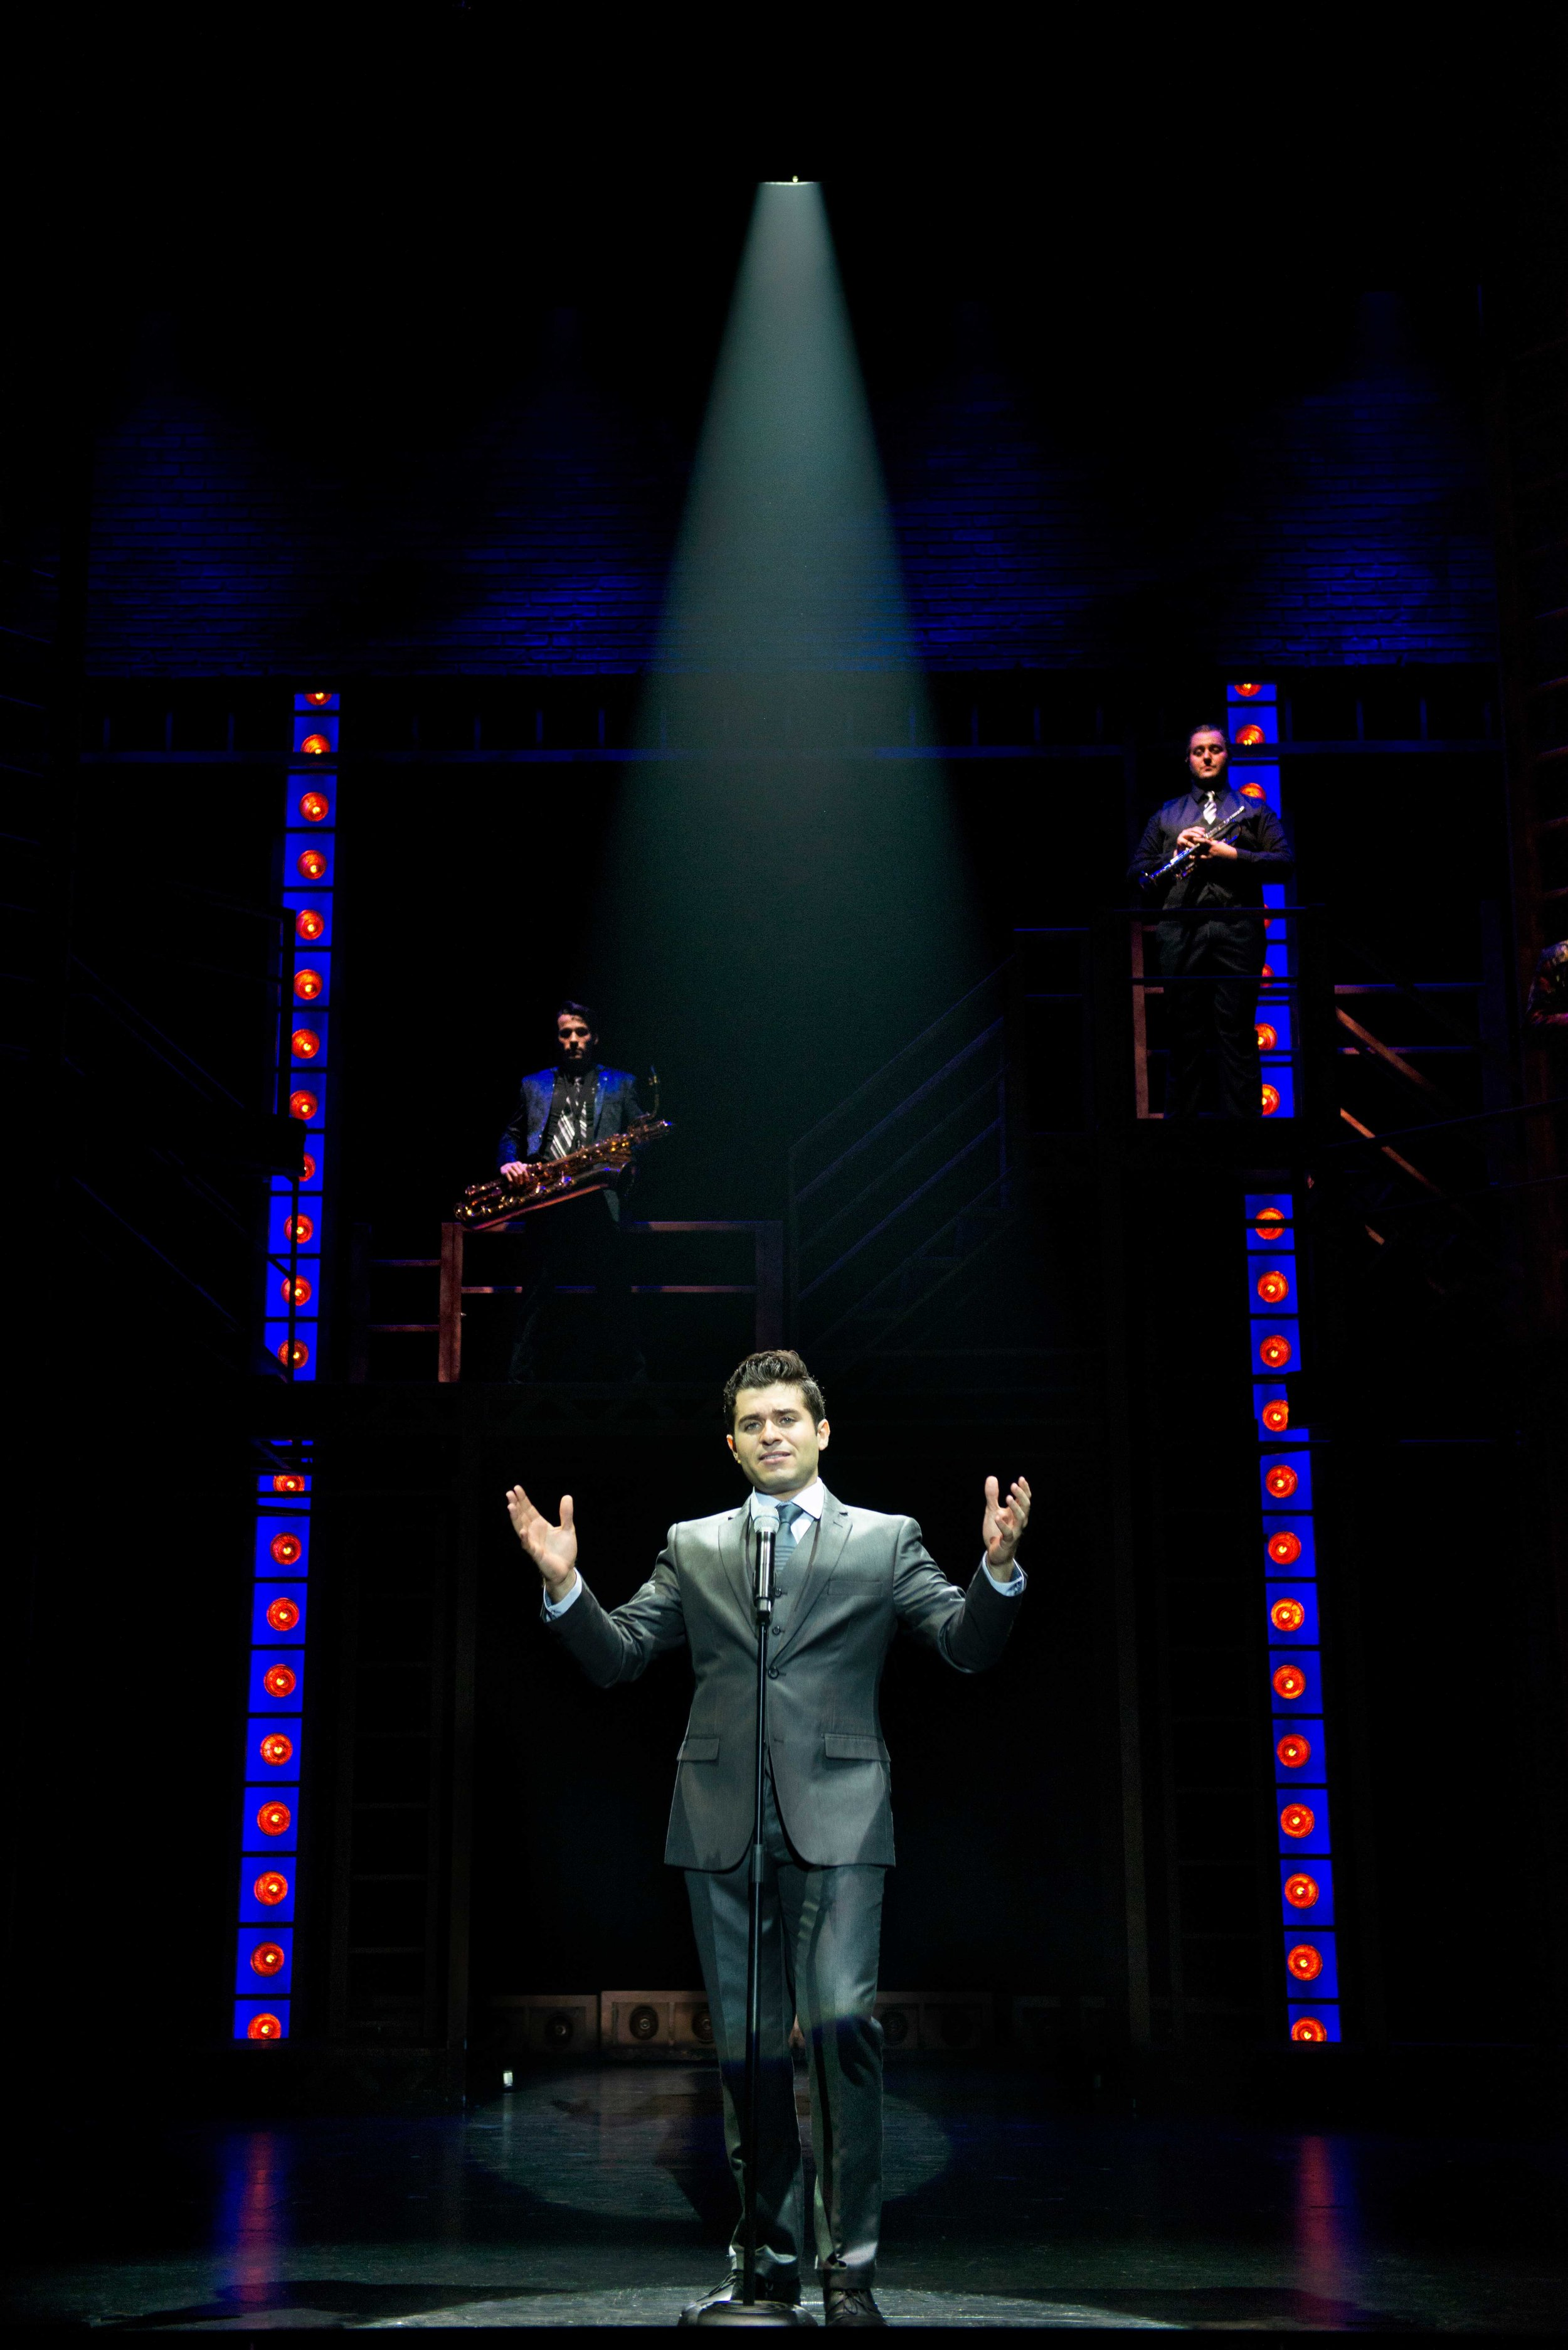 Conor Schulz, Jonathan Mousset, and Andrew Aaron Berlin in Jersey Boys at the Ogunquit Playhouse, 2018. Photo by Gary Ng.